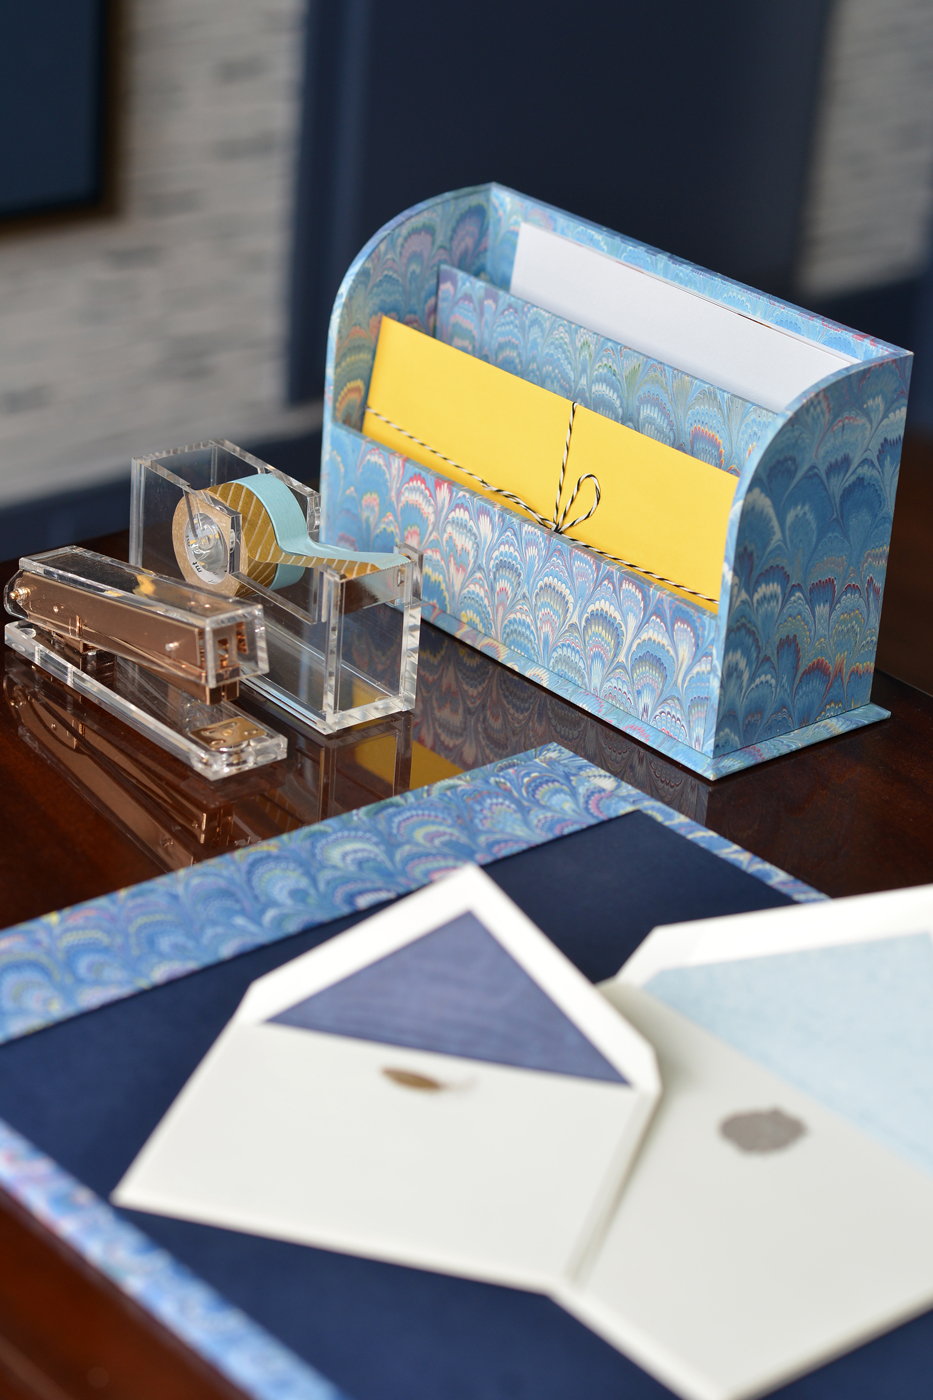 Decorating with acrylic lucite desk accessories and blue marbled paper in a home office | Savage Interior Design